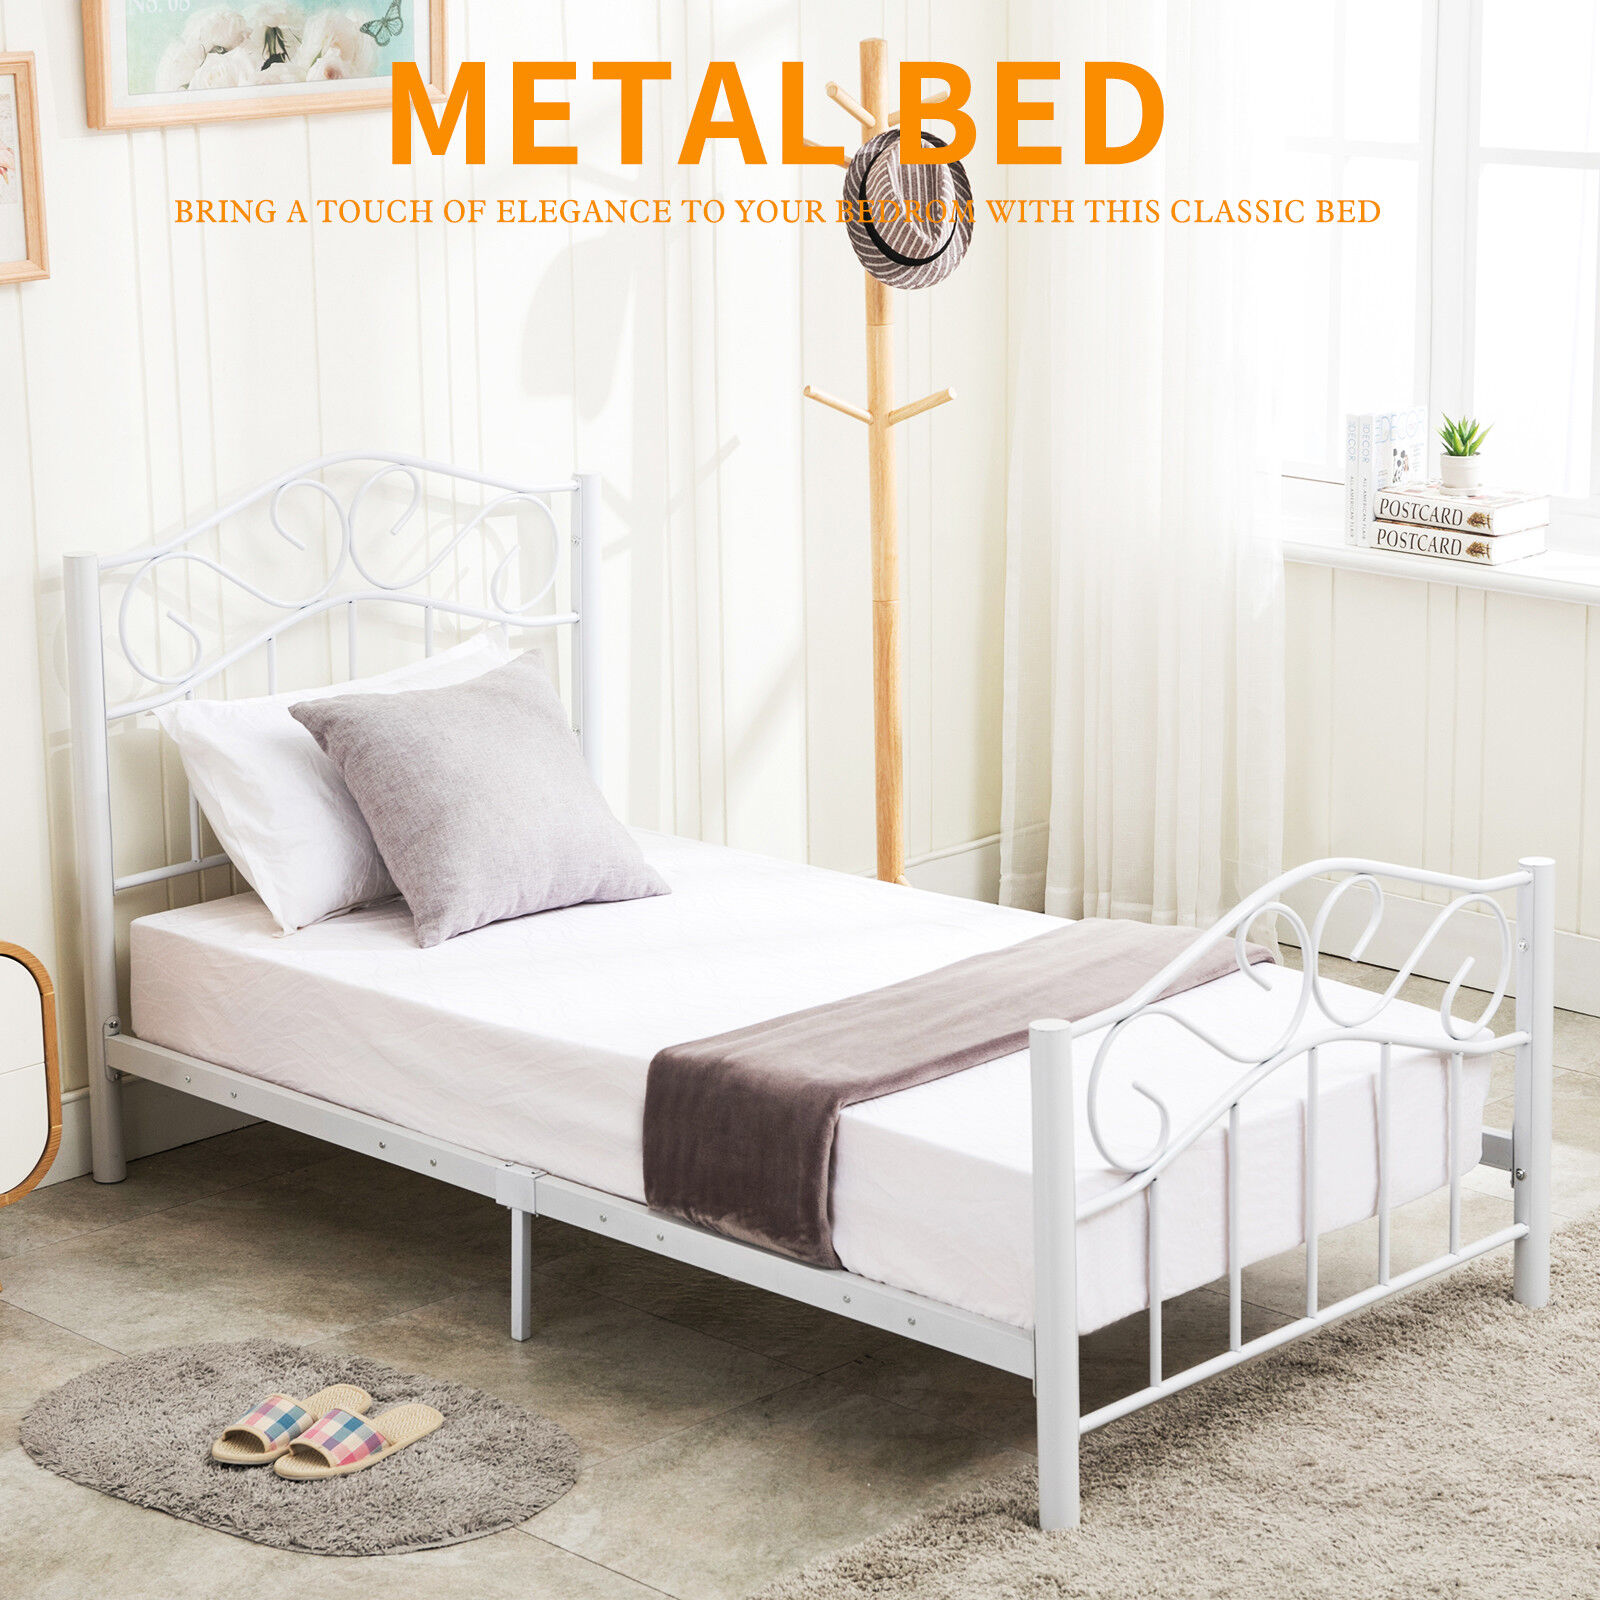 Miraculous Details About Twin Size Heavy Duty Metal Bed Frame Headboard Footboard Bedroom Furniture White Beutiful Home Inspiration Truamahrainfo